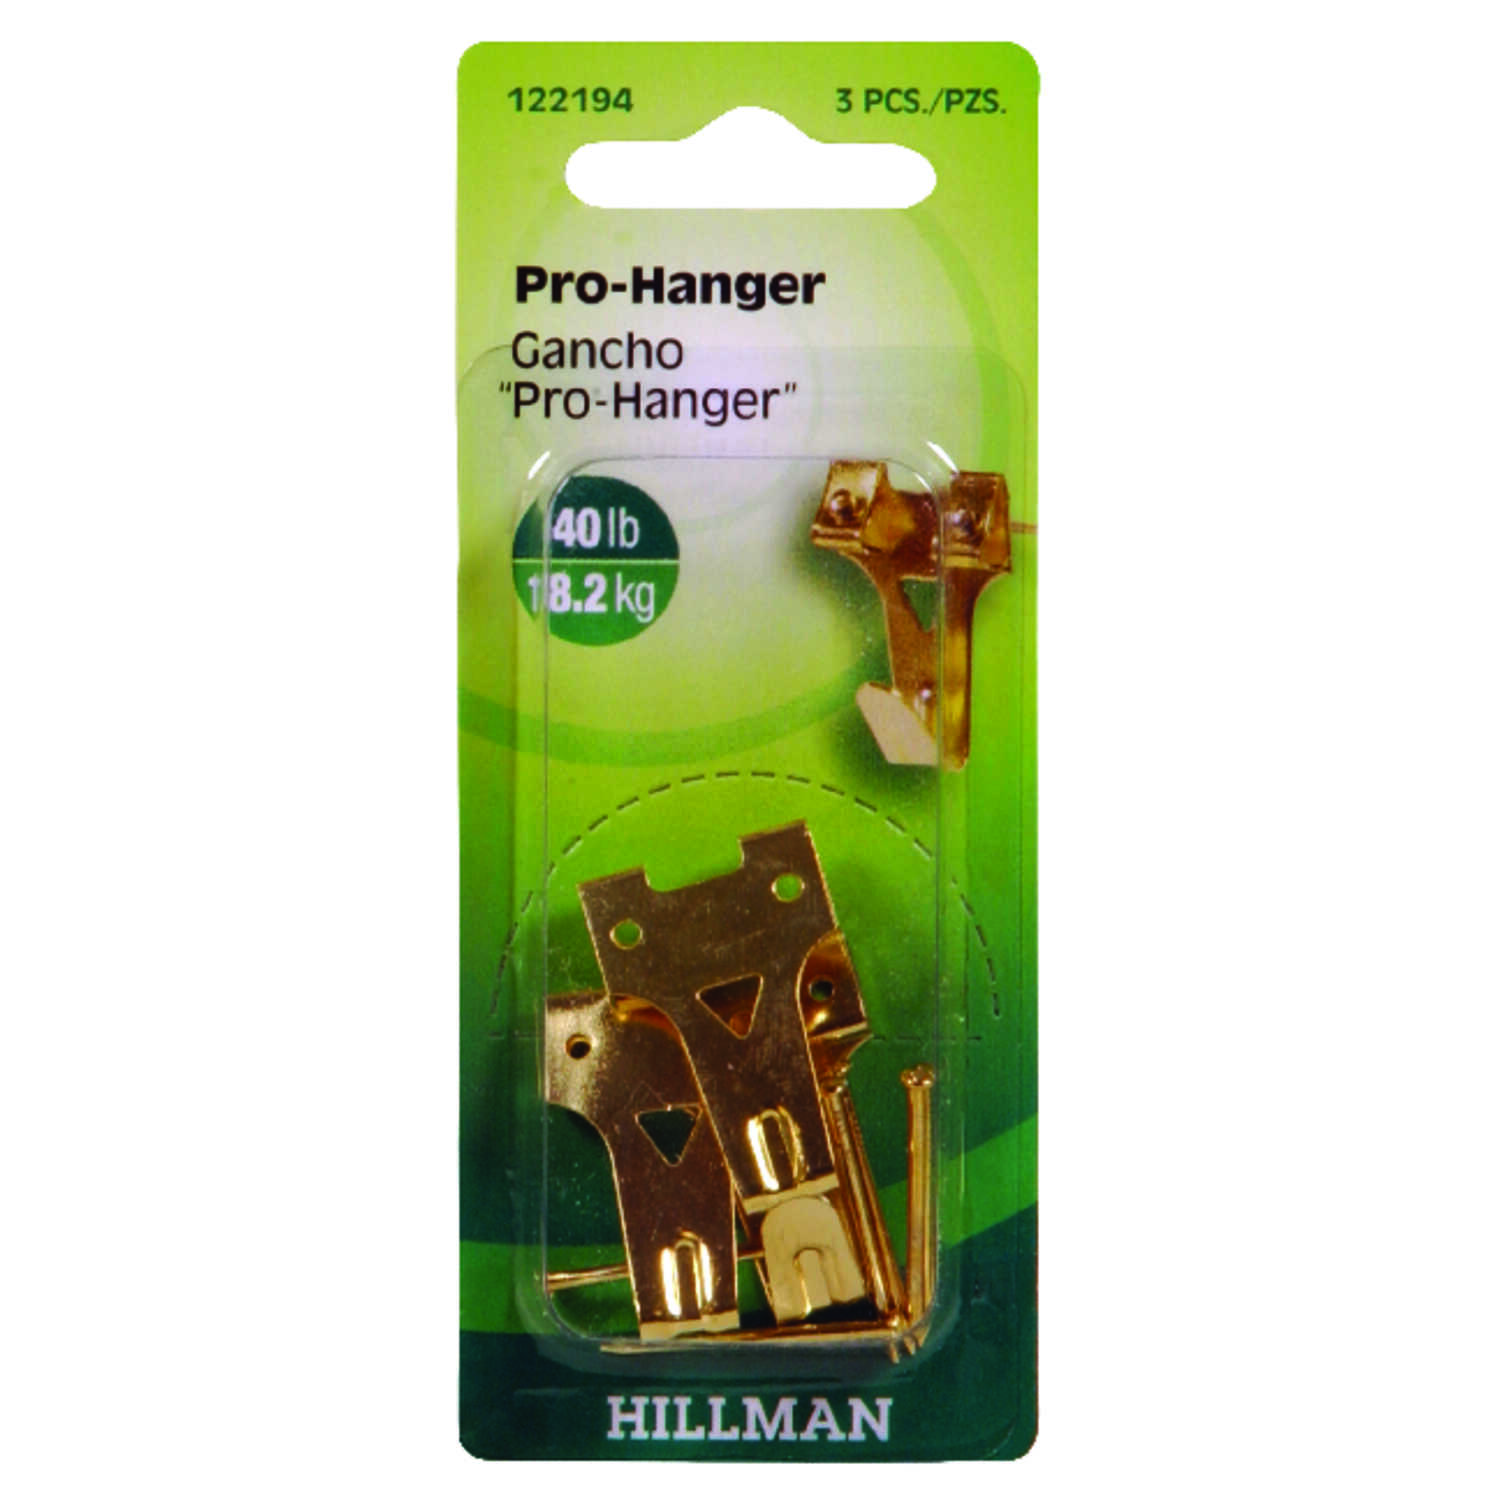 HILLMAN  AnchorWire  Brass-Plated  Brass  Professional  40 lb. 3 pk Picture Hanger